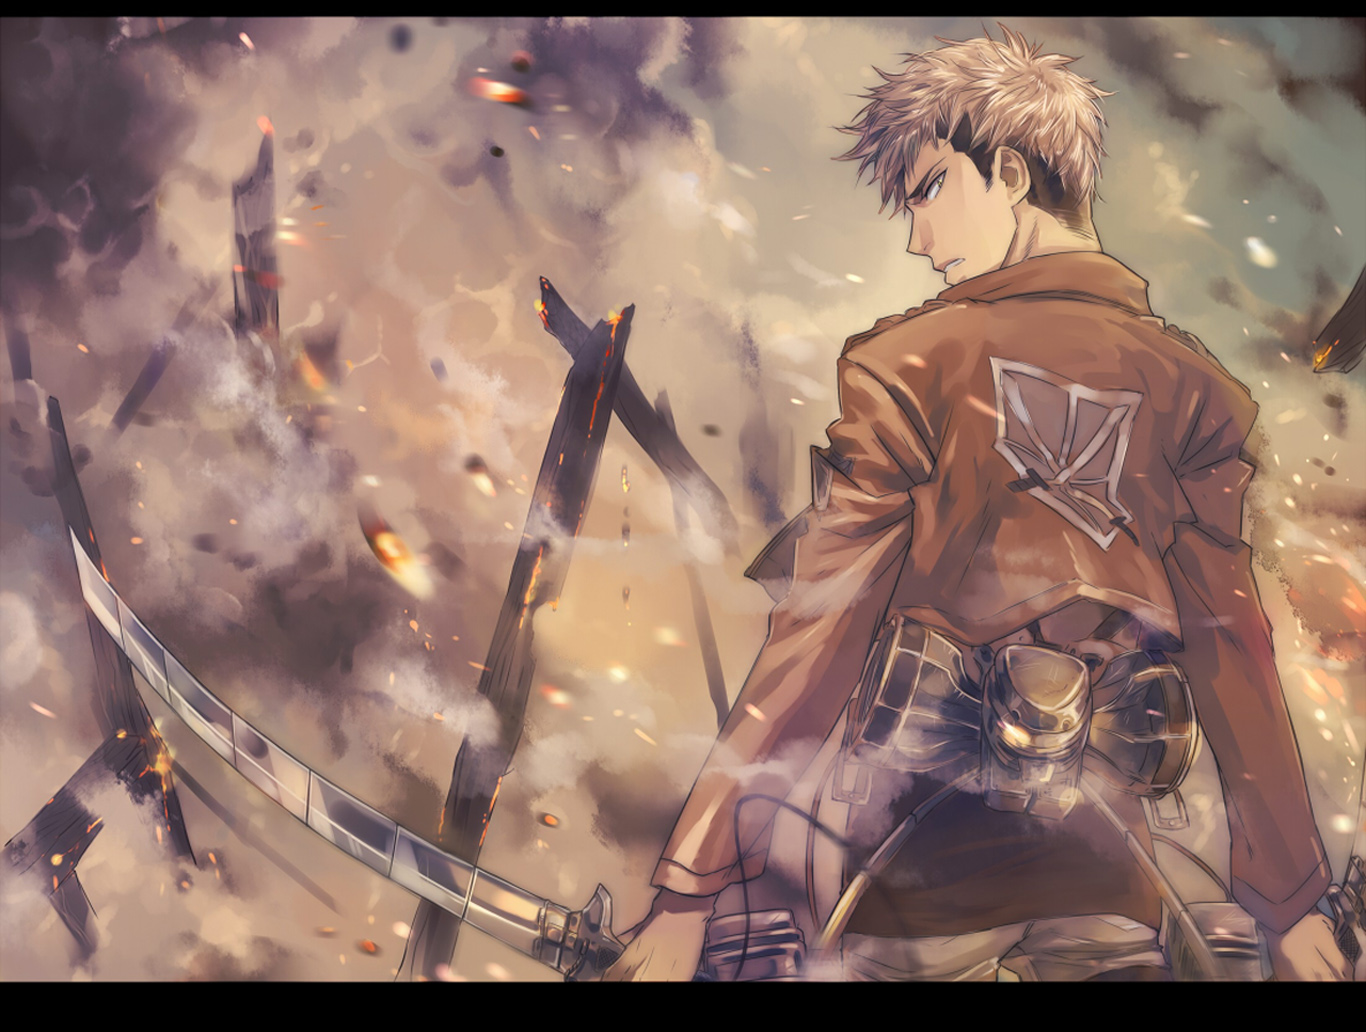 Titan Shingeki no Kyojin Anime HD Wallpaper Desktop PC Background 2118 1366x1032